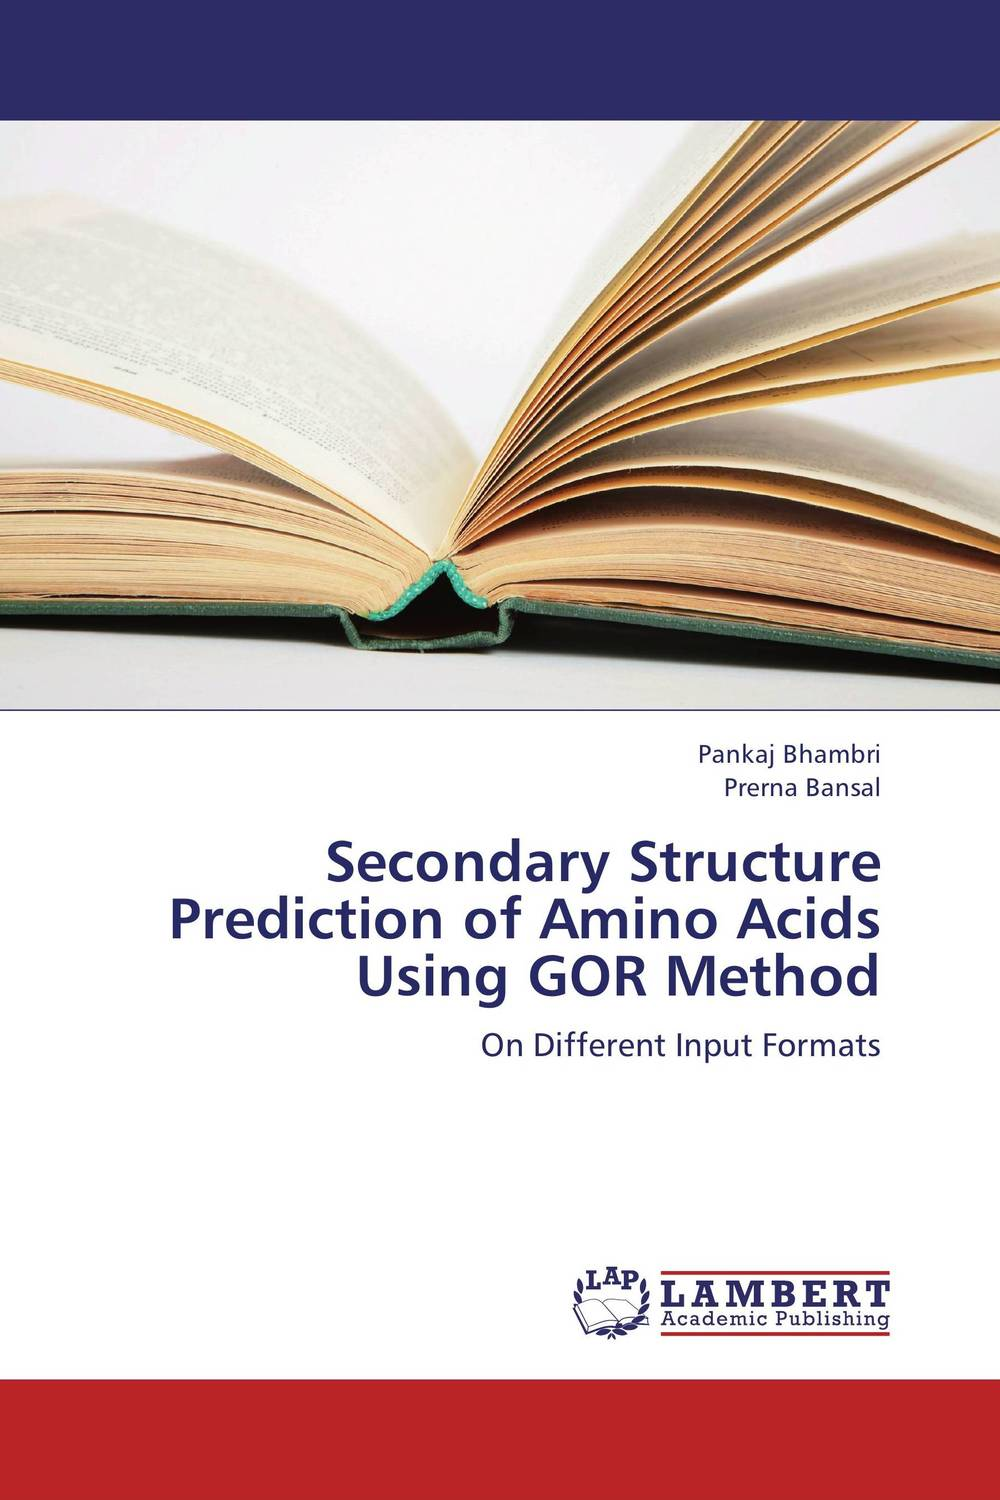 Secondary Structure Prediction of Amino Acids Using GOR Method kiran sree pokkuluri ramesh babu inampudi and sssn usha devi nedunuri cellular automata in secondary structure prediction